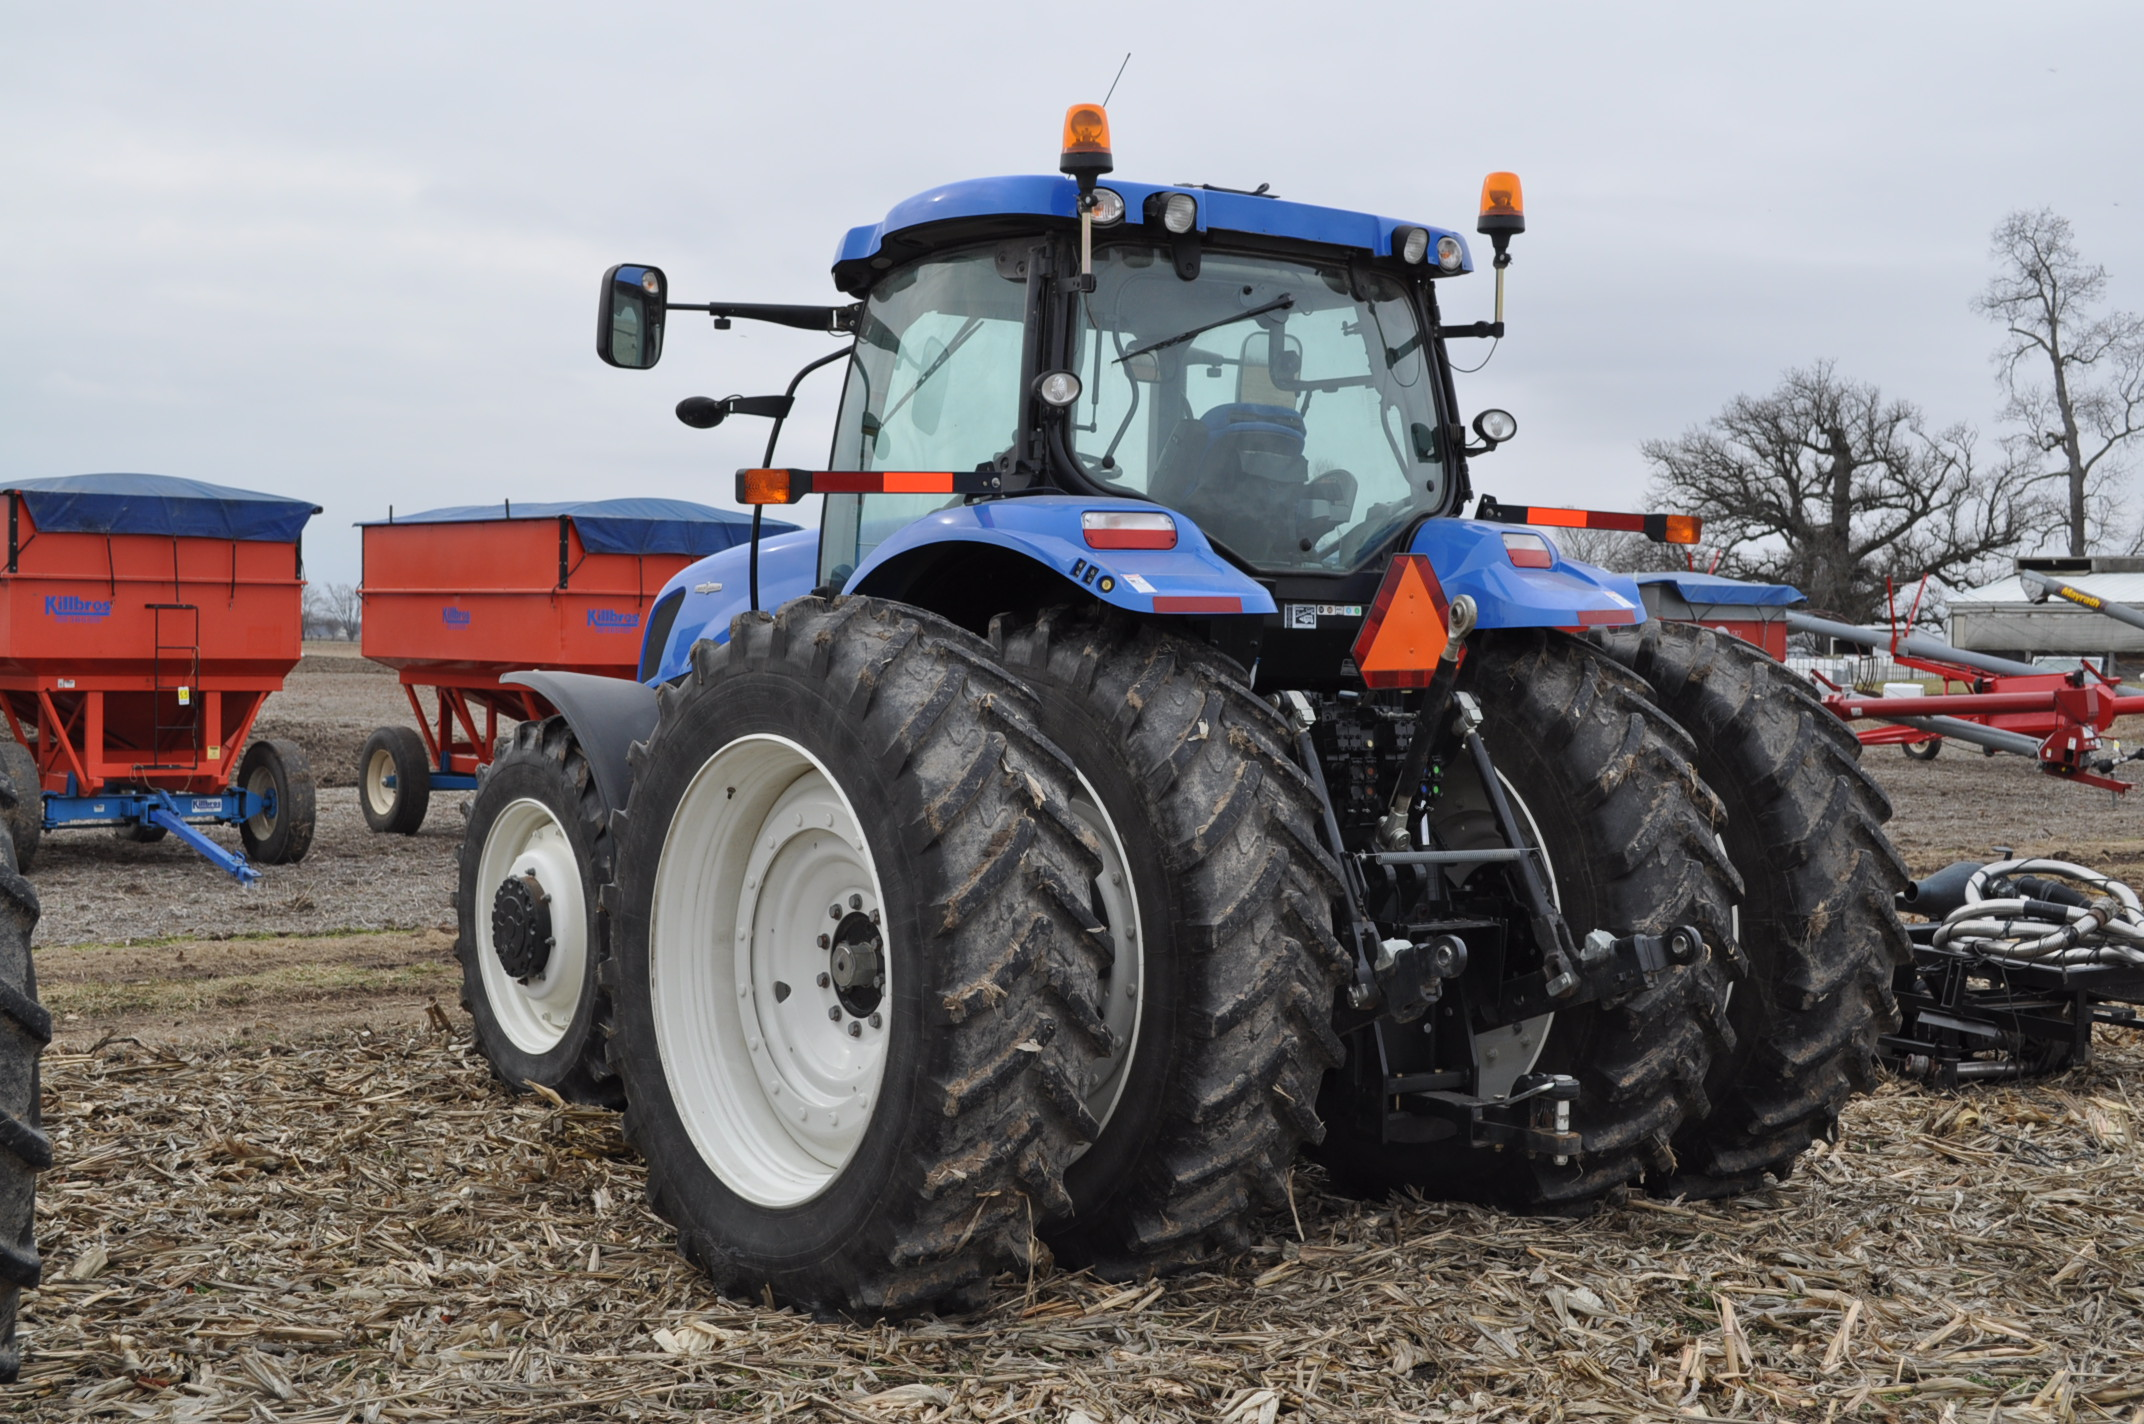 New Holland T7.250 tractor, 480/80 R 46 duals, Michelin 380/85 R 34 front, Super Steer, front wts, - Image 2 of 28